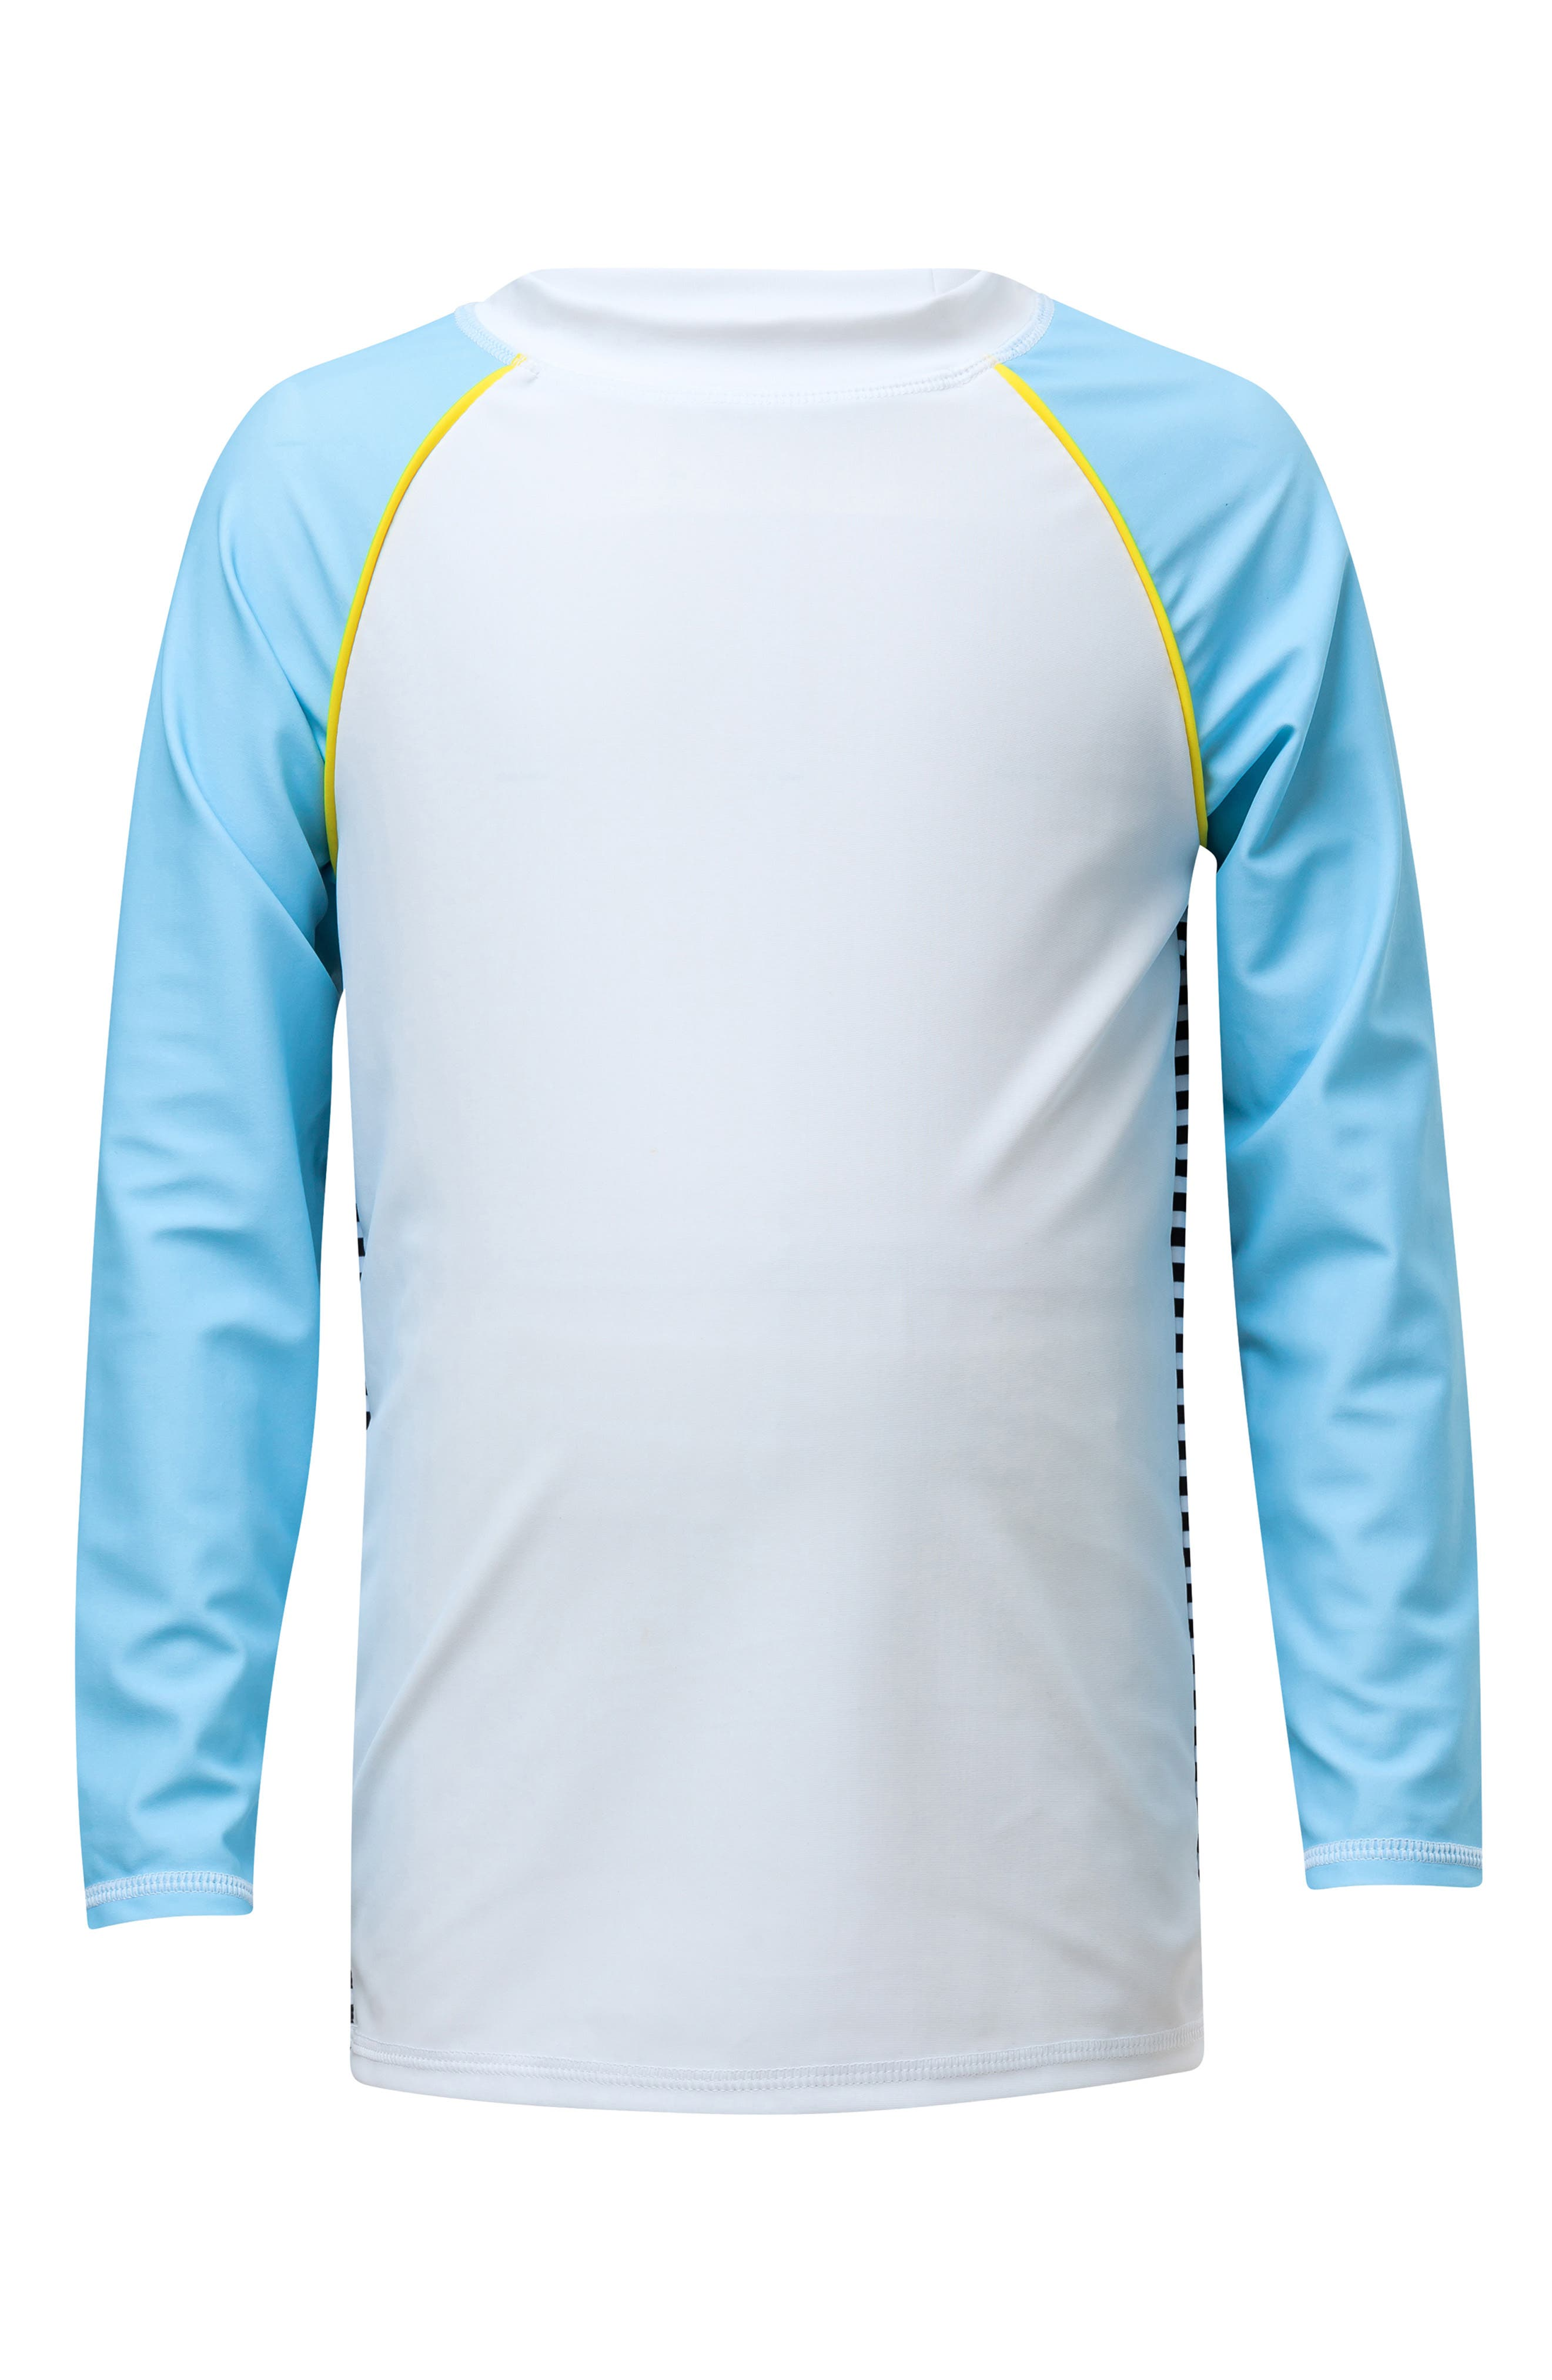 Back Stripe Rashguard,                             Main thumbnail 1, color,                             WHITE BLUE BLACK